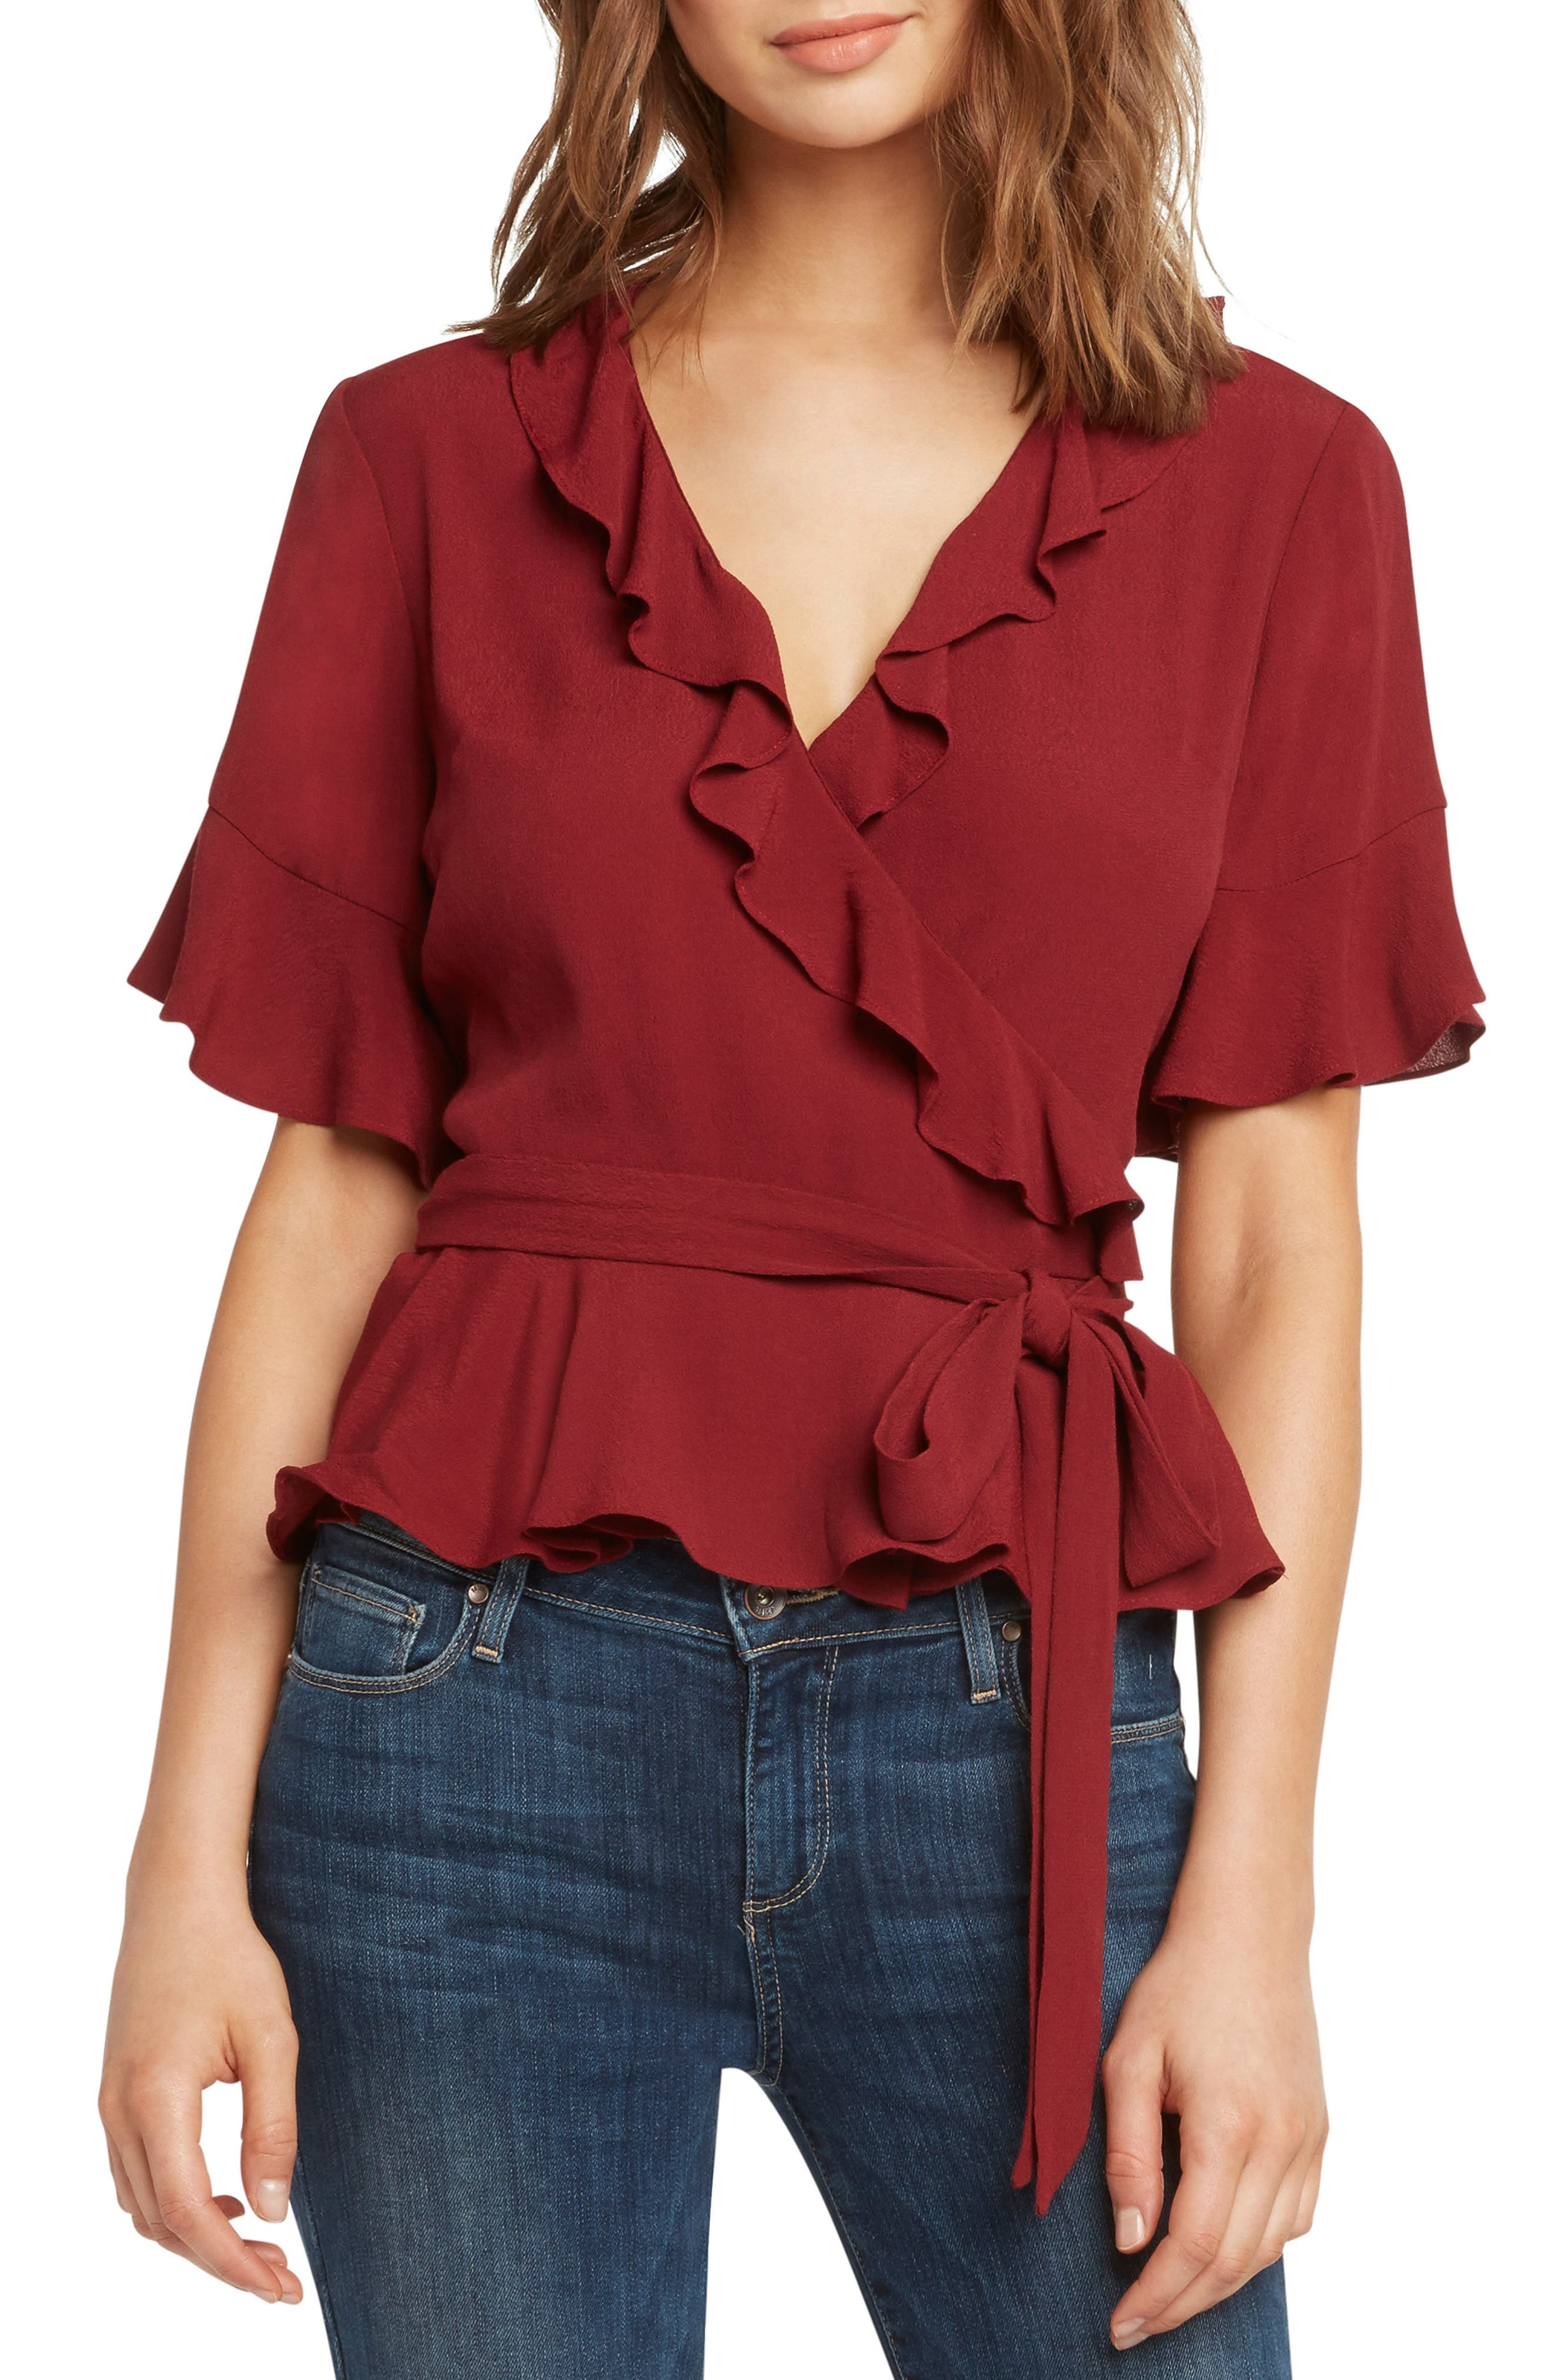 Vintage & Retro Shirts, Halter Tops, Blouses Womens Willow  Clay Ruffle Wrap Top $79.00 AT vintagedancer.com